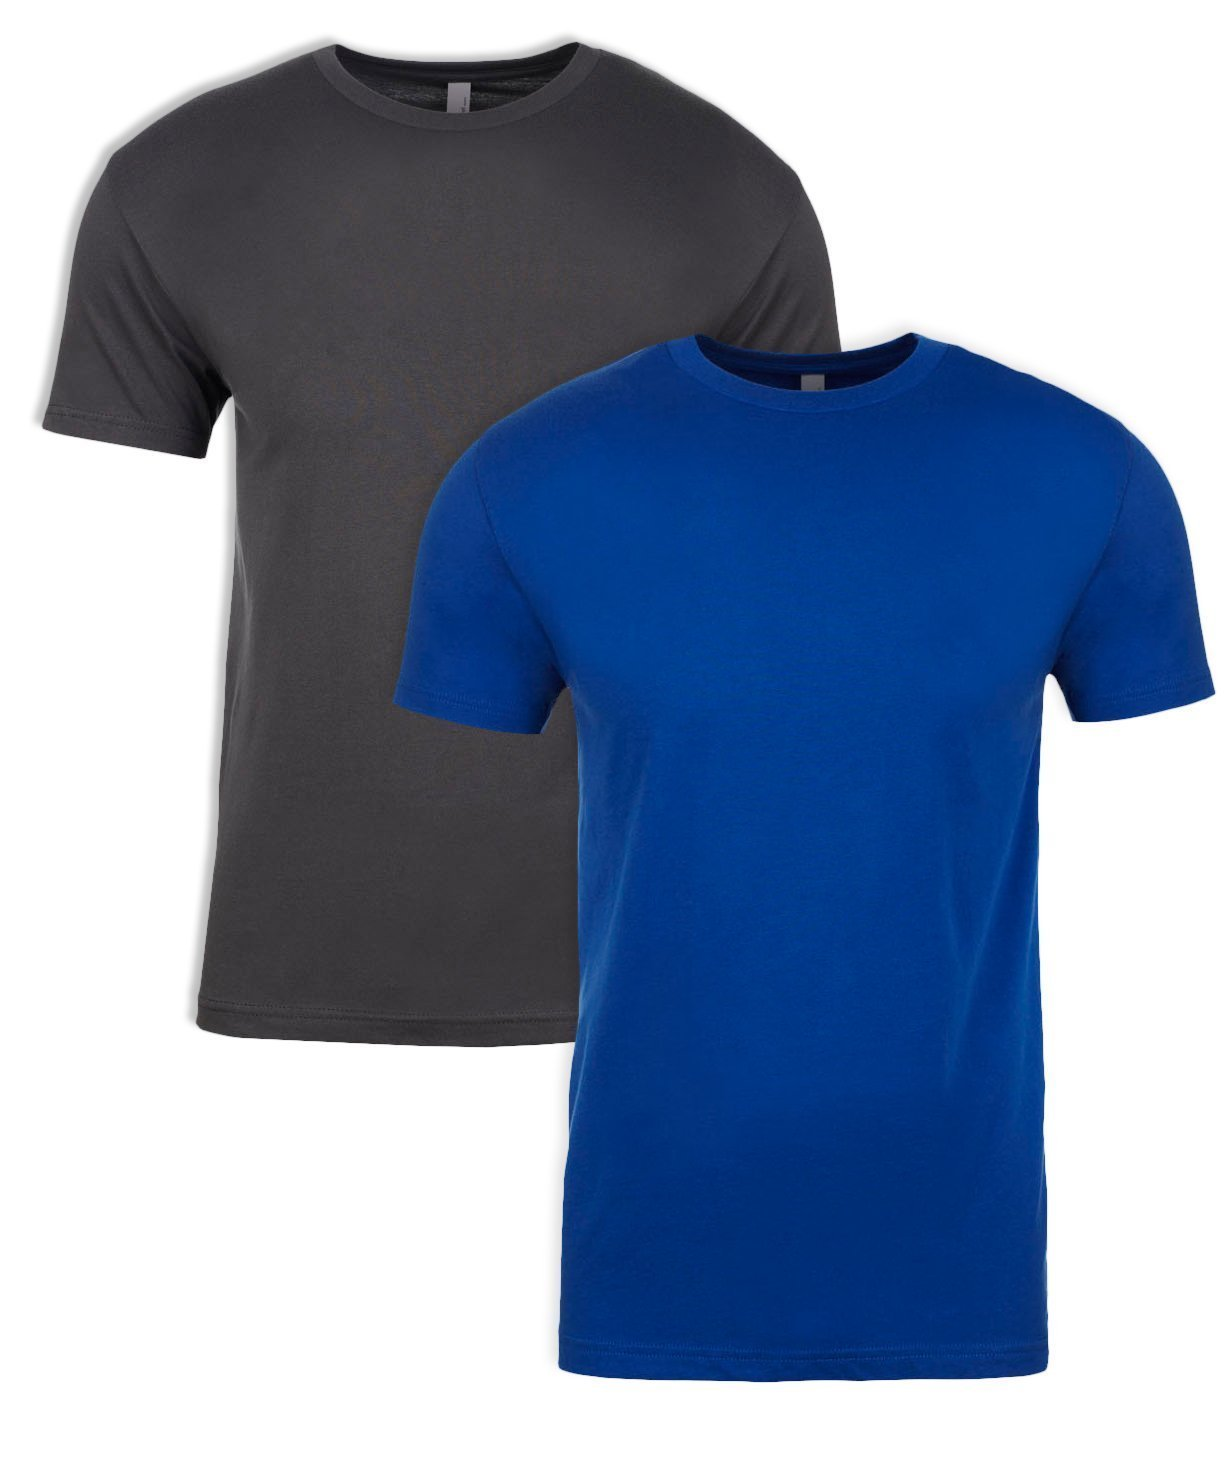 Top 10 Best Black T-Shirts. A fitted black T-shirt is one of the best plain T-shirts, especially if you're looking to give your torso more definition. The Idle Man's Sunday Club T-shirt is a great example of a quality crew neck. With a classic, regular fit, this tee is great for everyday wearing, with the added graphic pop of colour.